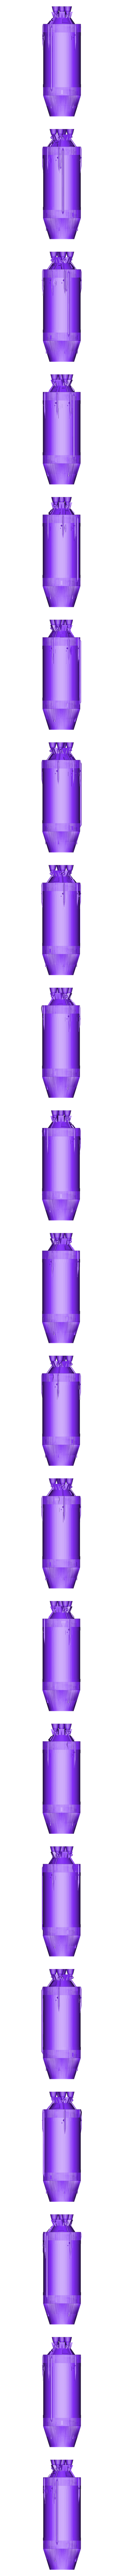 S-II.stl Download free STL file Saturn V Rocket • 3D printable model, spac3D